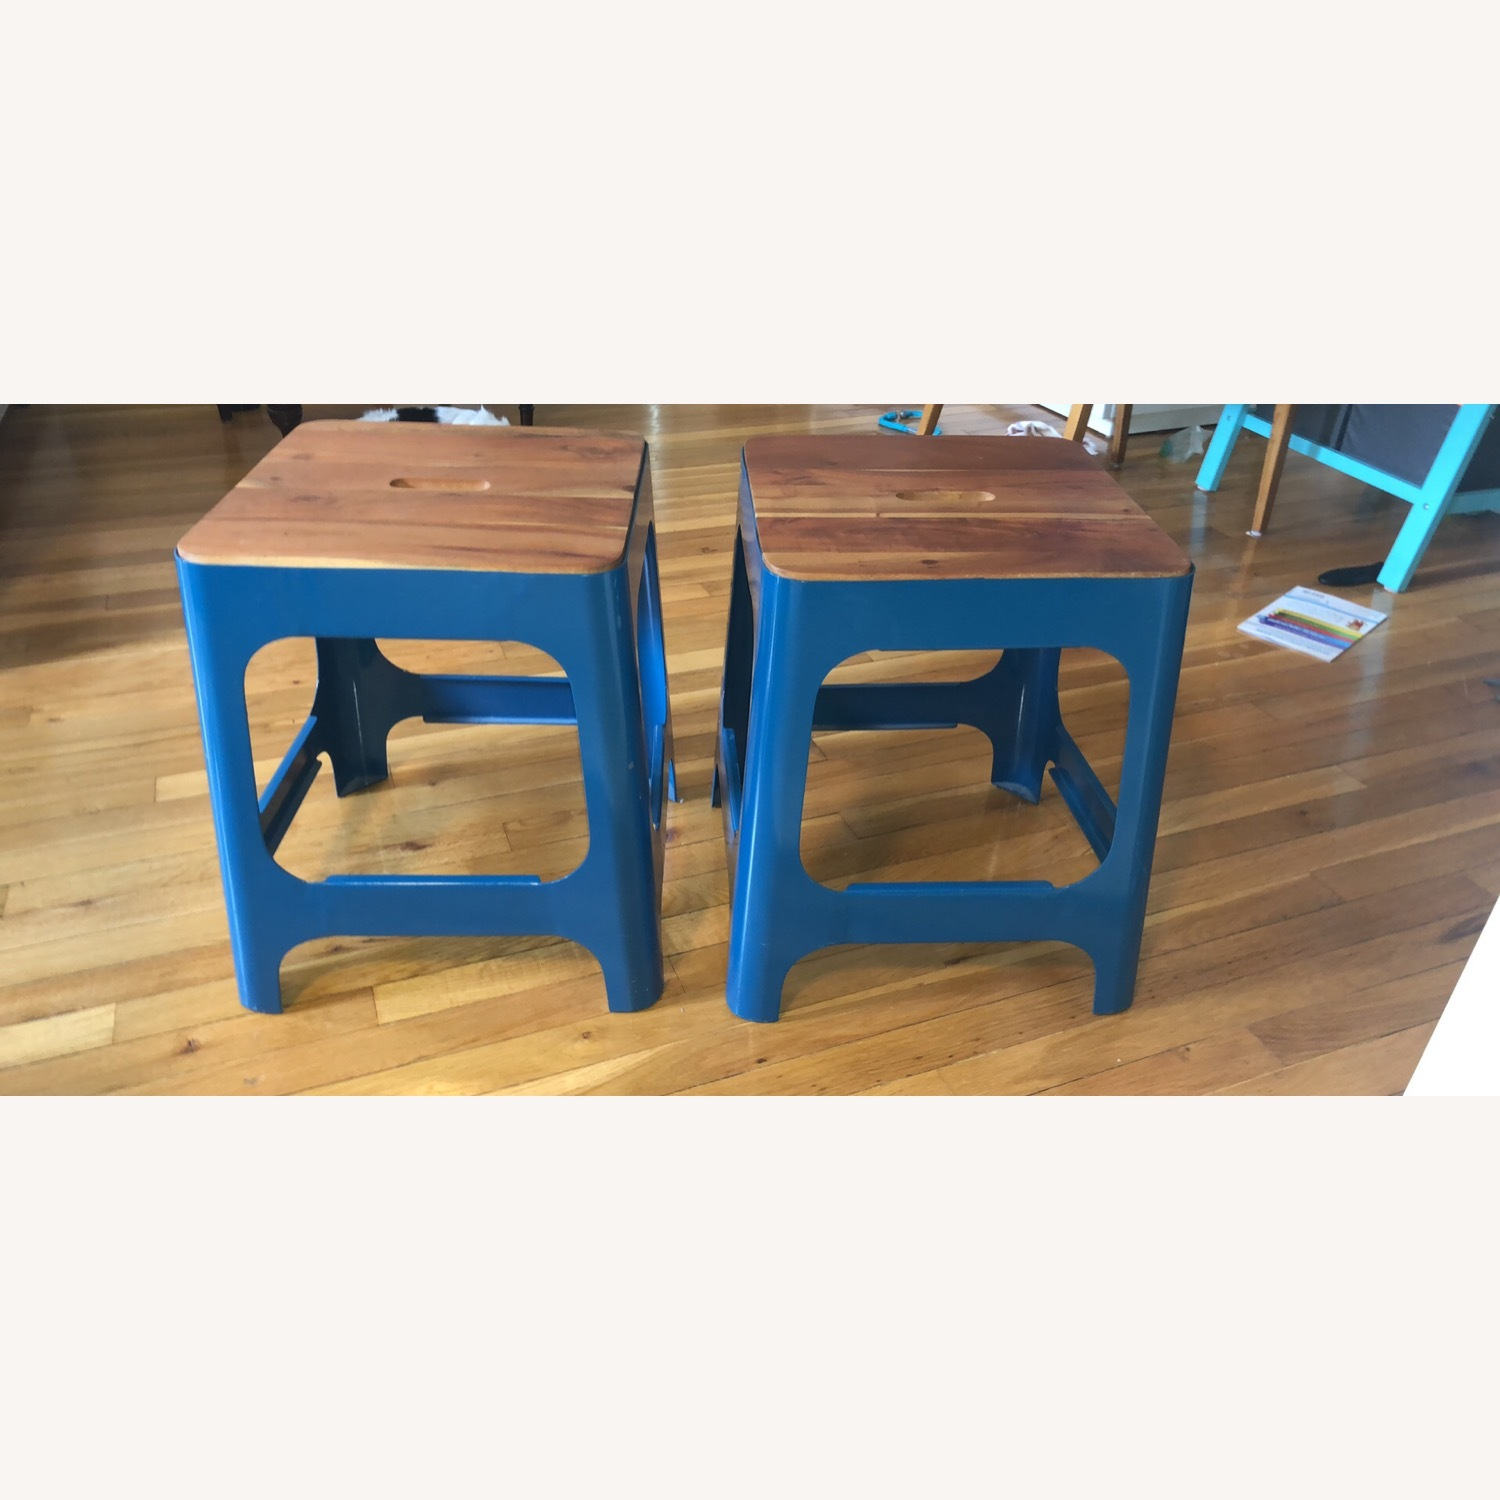 CB2 Hitch Stool in Peacock blue - image-5